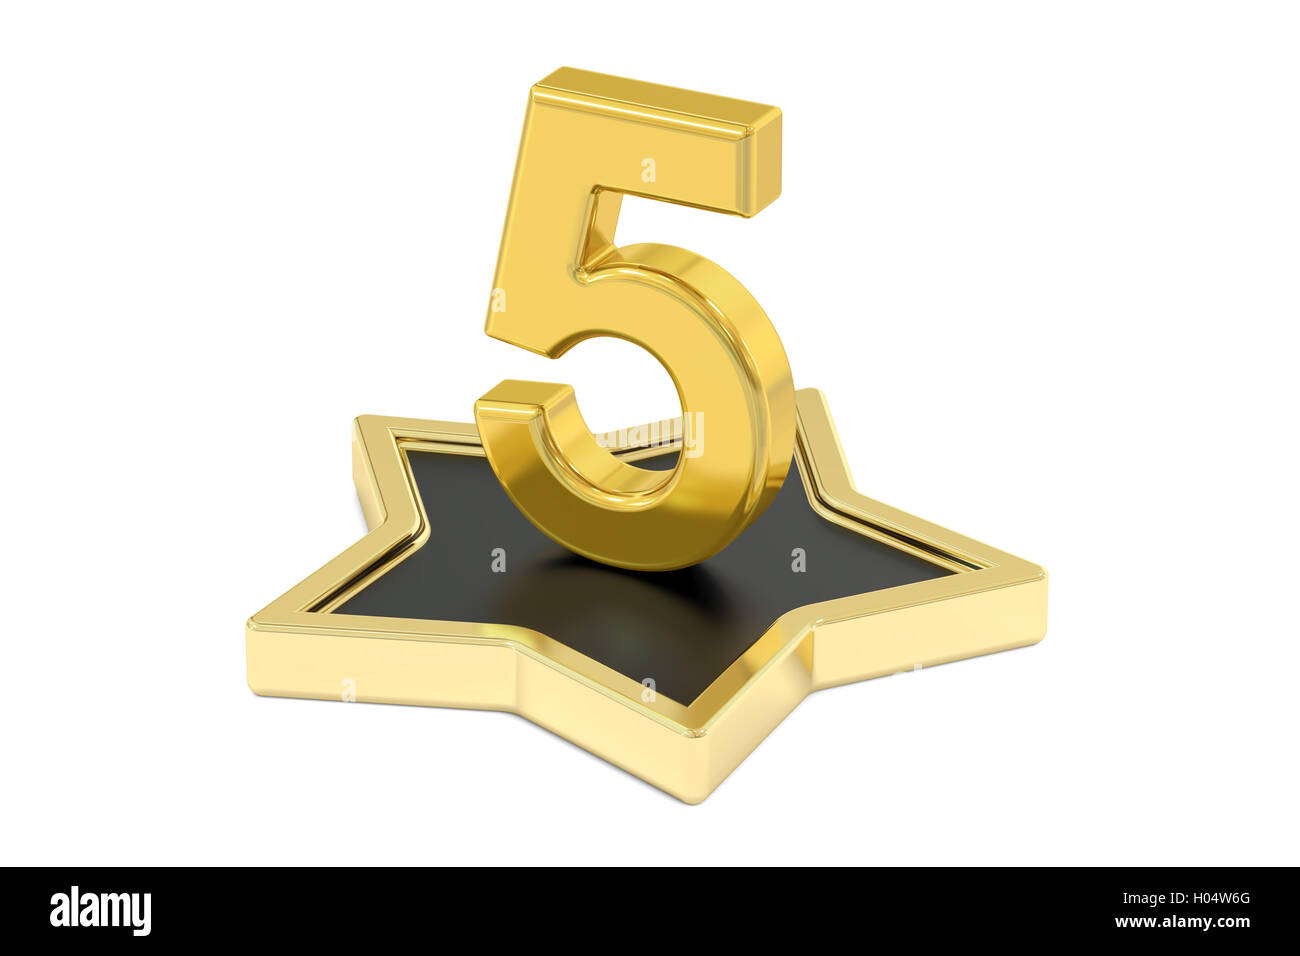 3D golden number 5 on star podium, 3D rendering isolated on white background - Stock Image